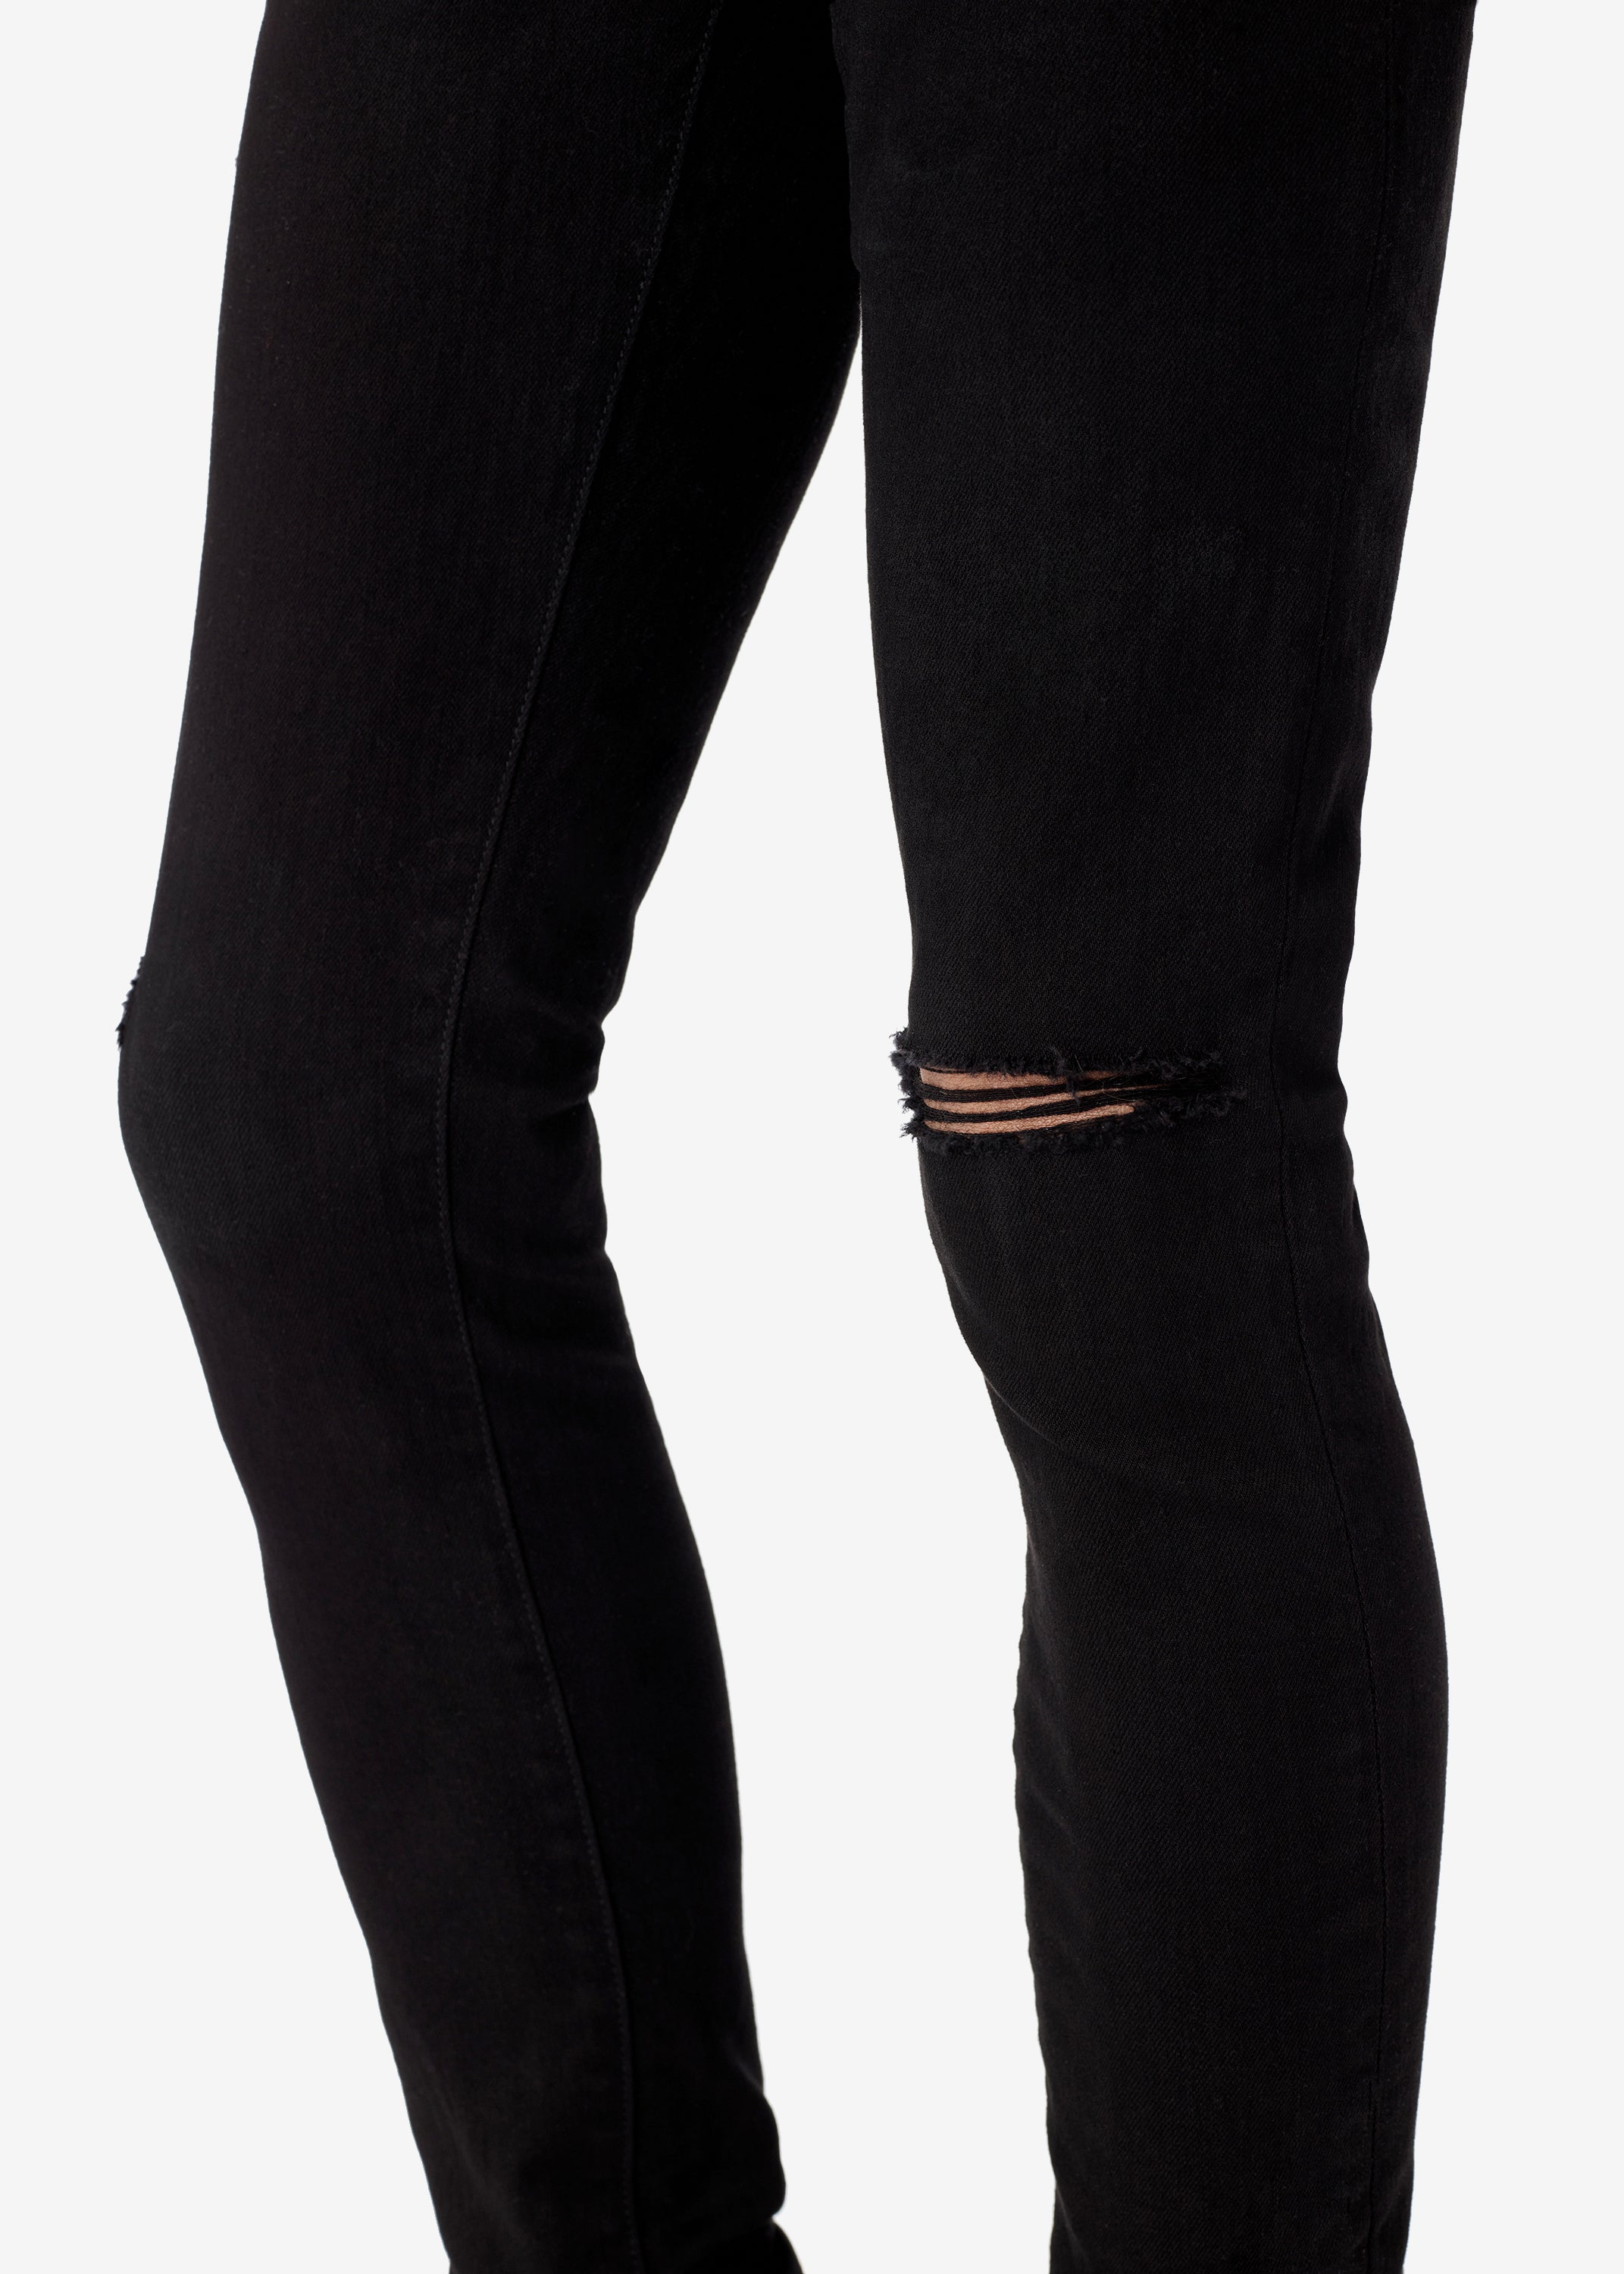 slit-knee-jean-web-exclusive-black-image-4